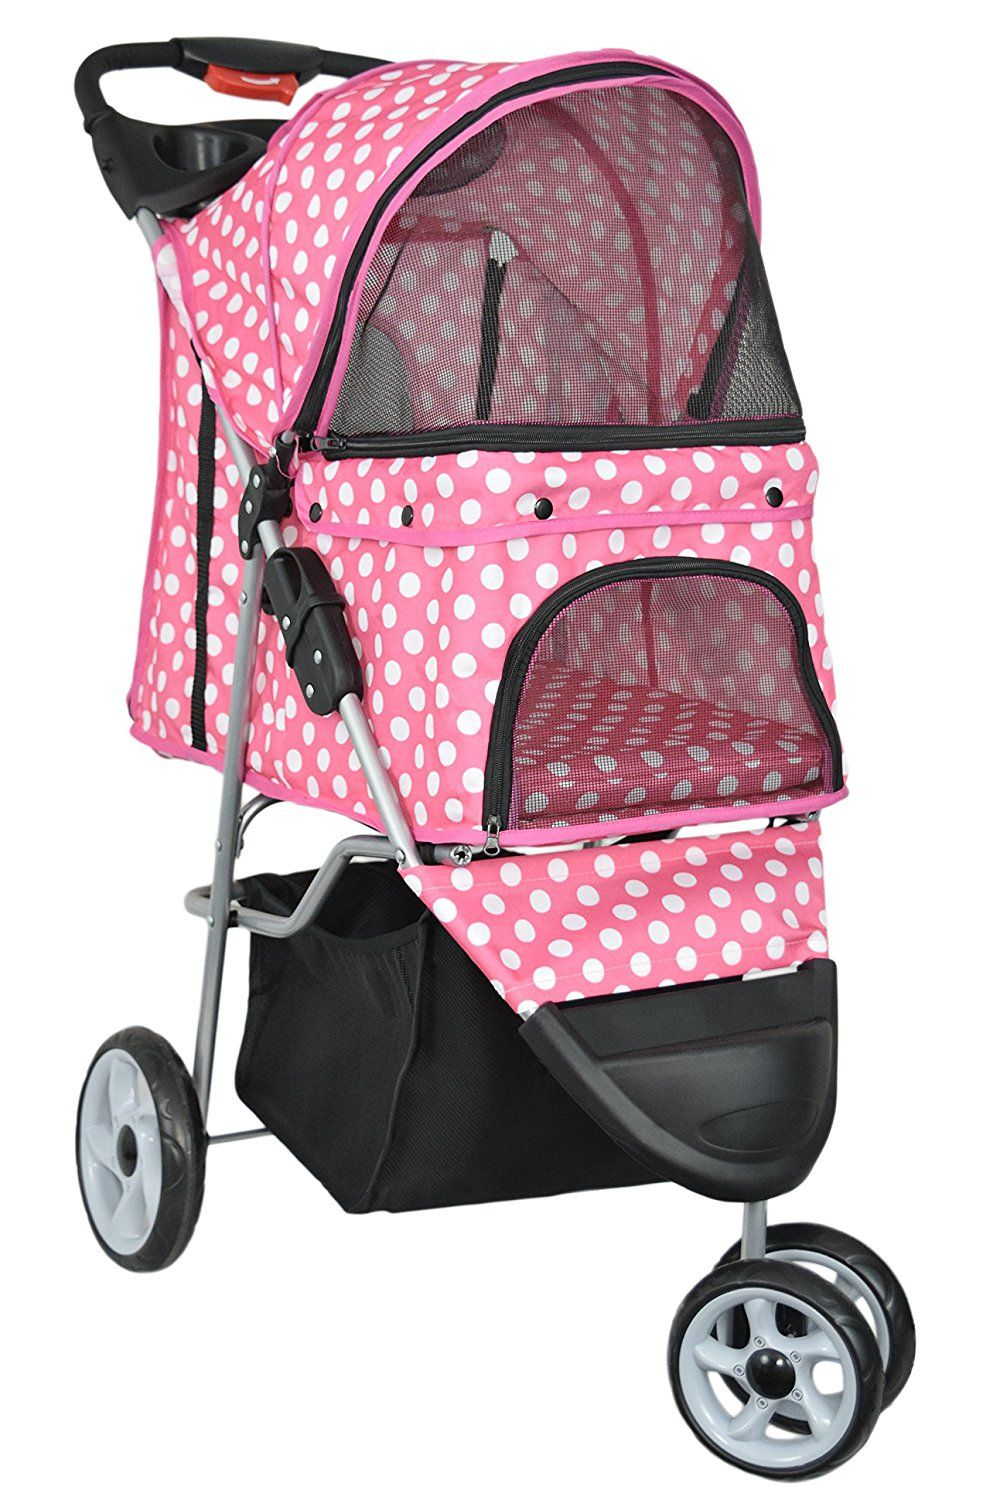 VIVO Three Wheel Pet Stroller, for Cat, Dog and More